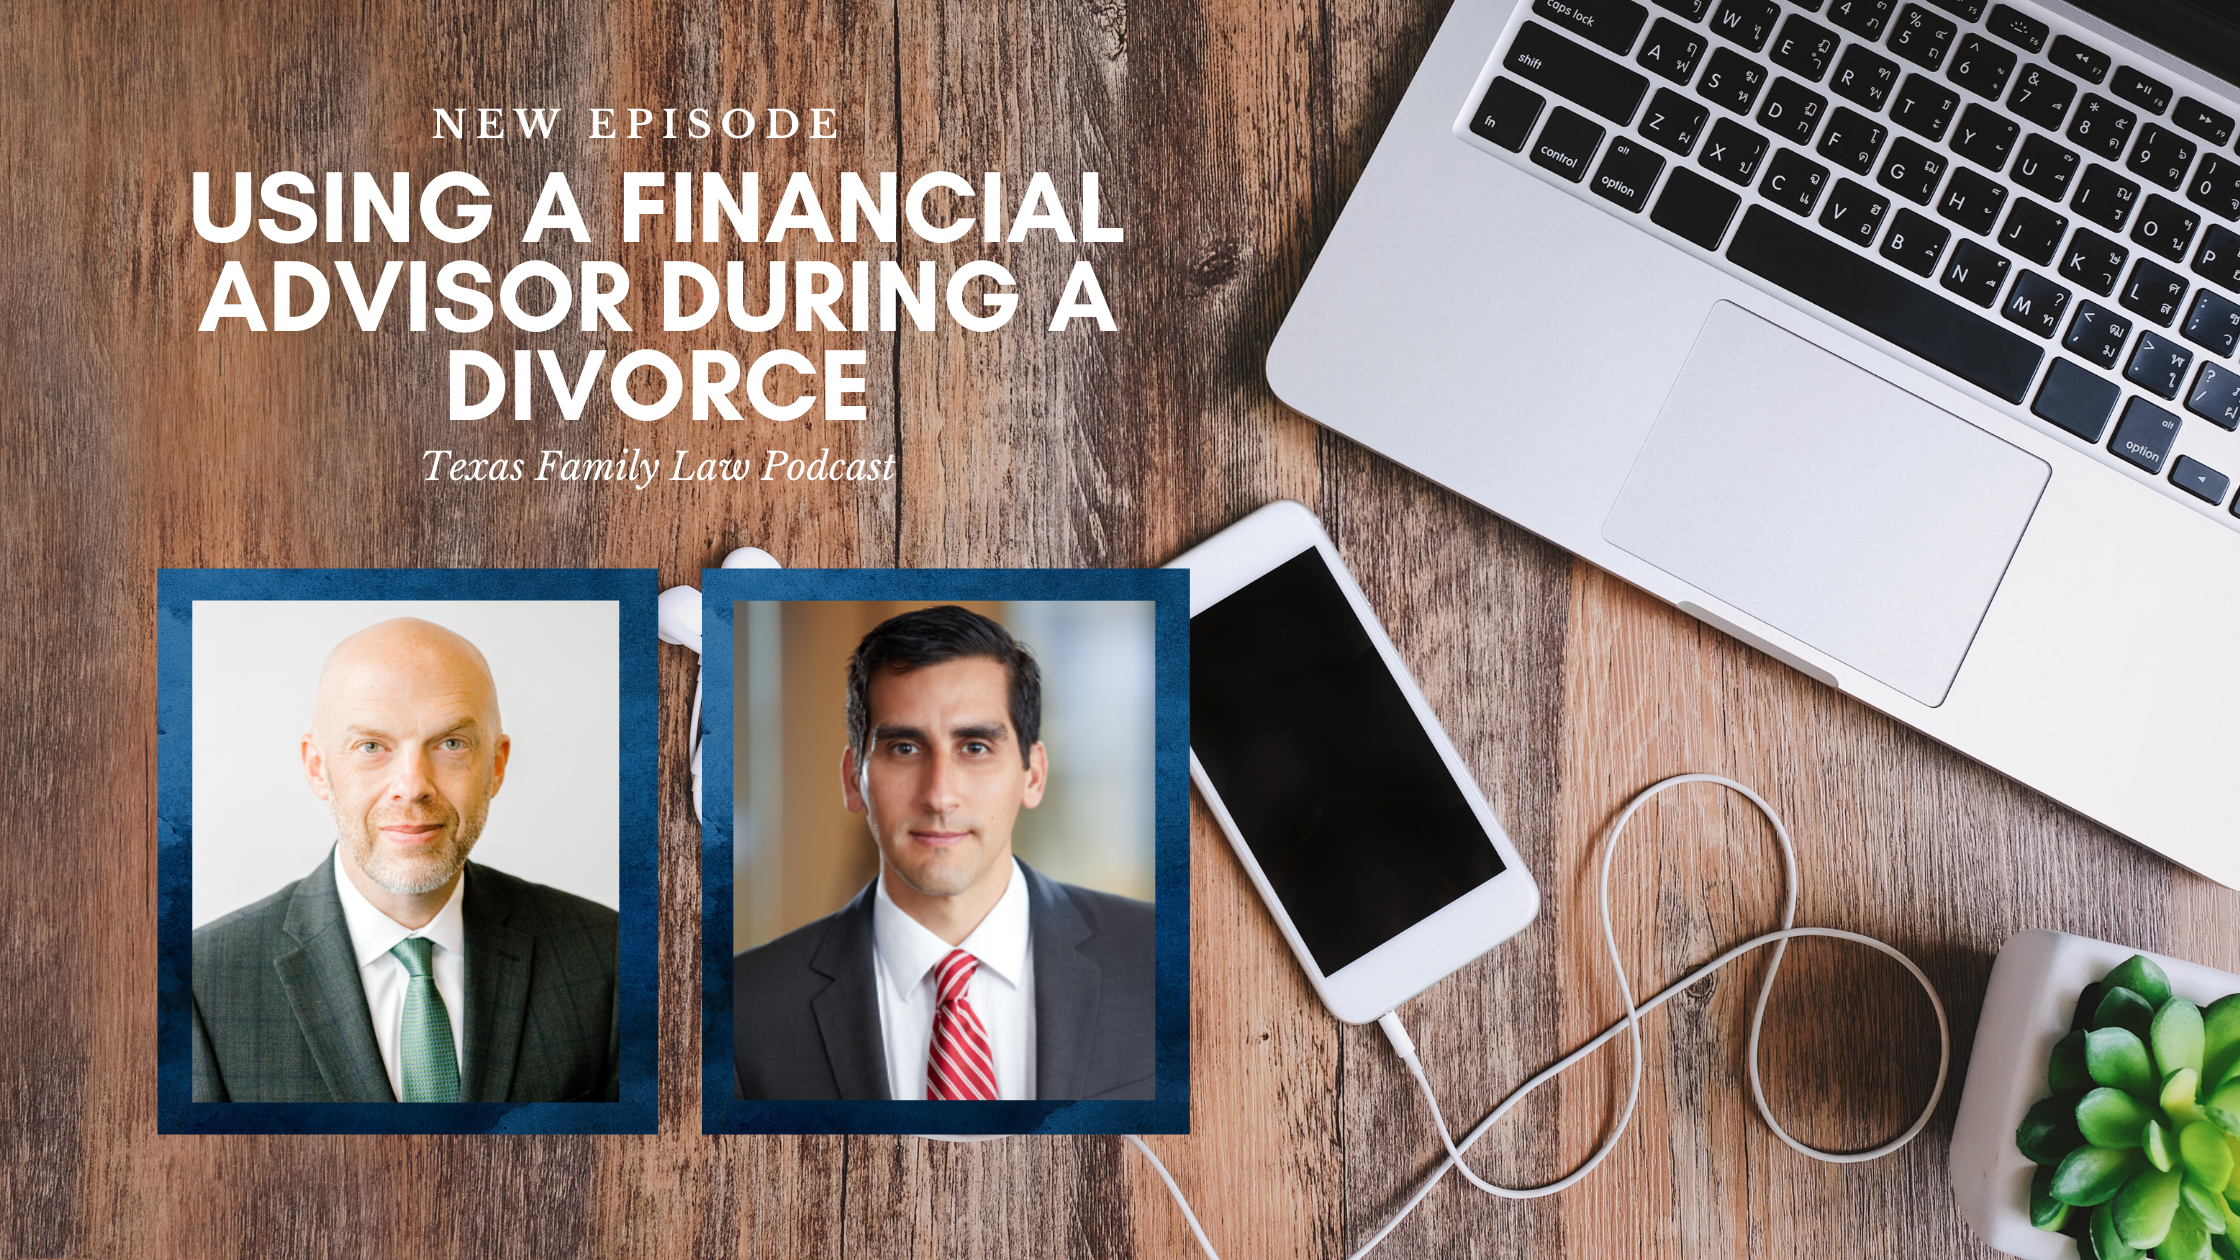 The Texas Family Law Podcast: Using a Financial Advisor During a Divorce (feat. Matt Rappaport)